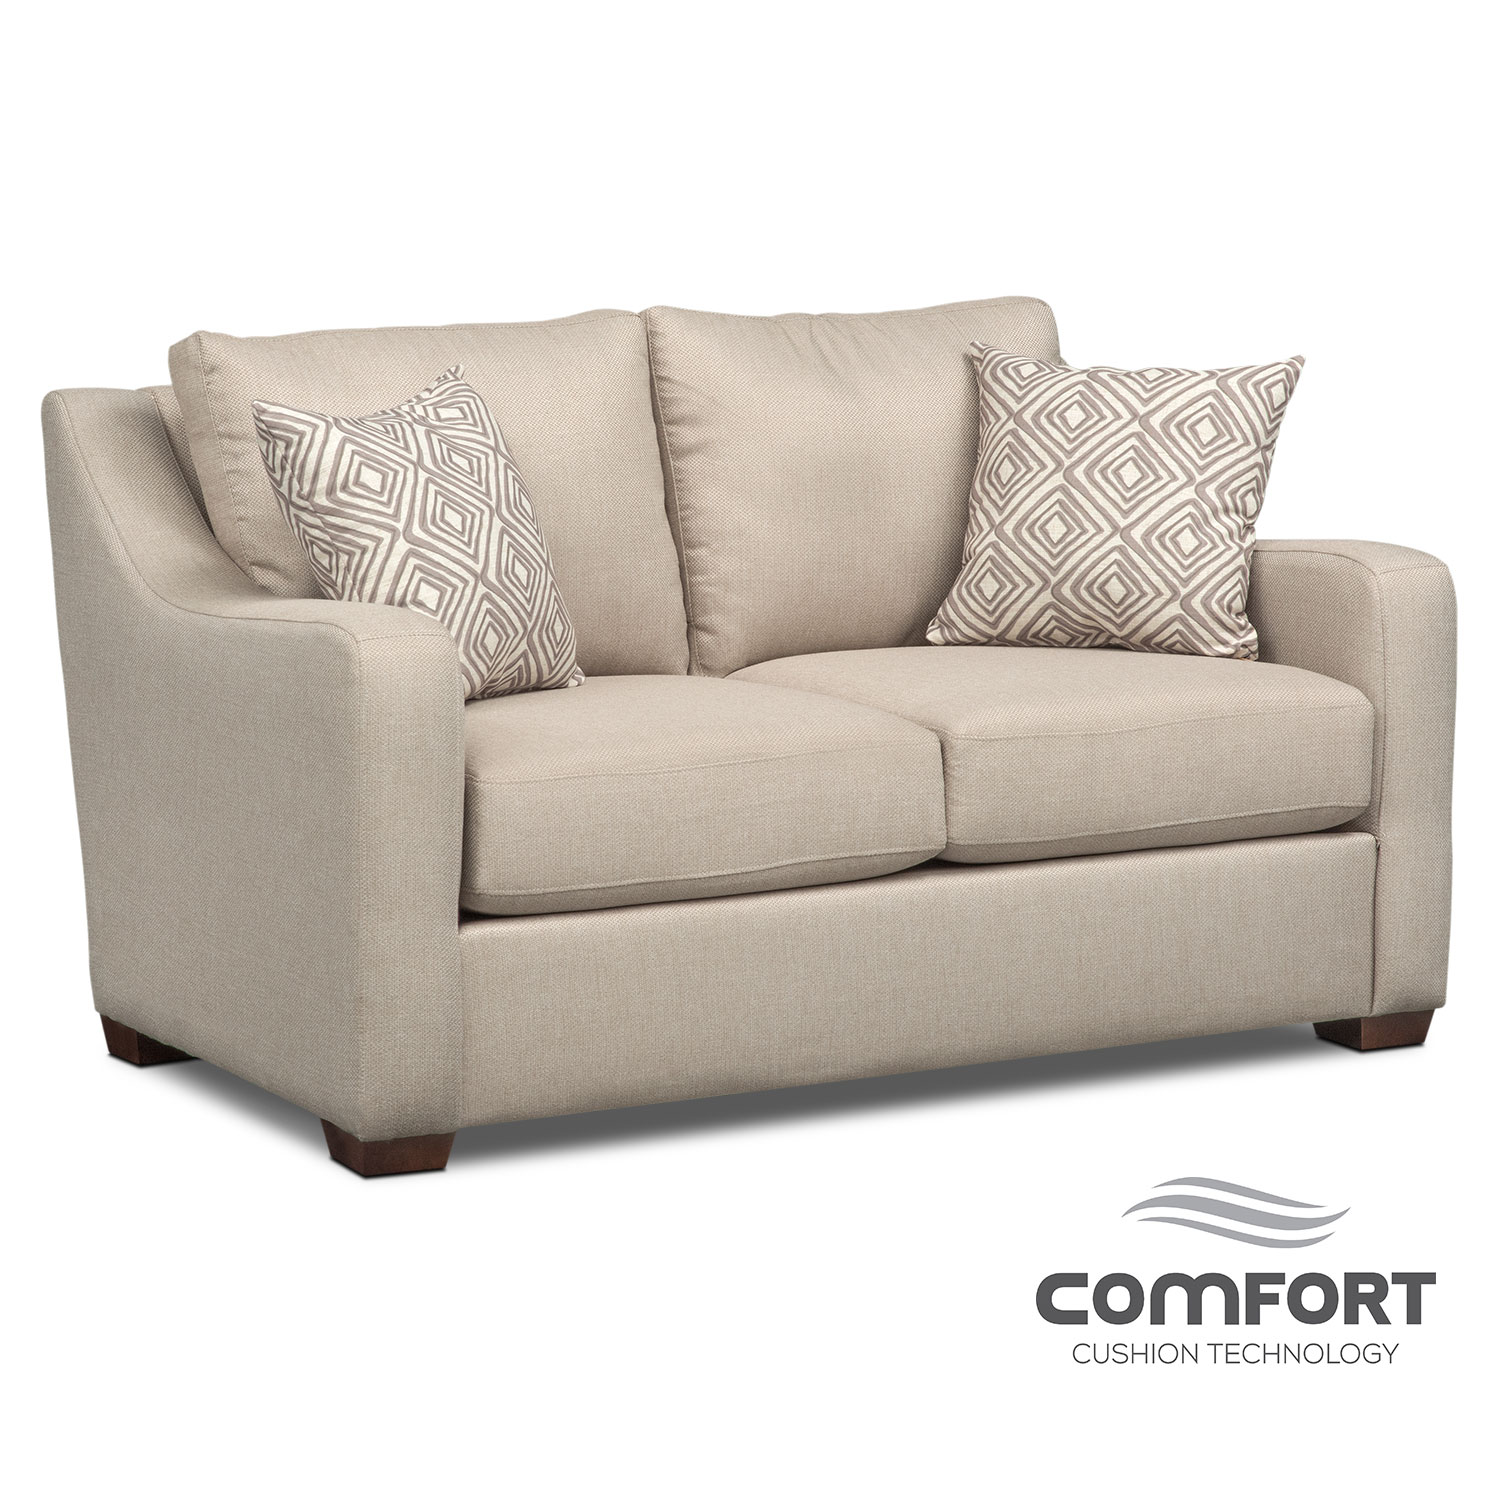 Living Room Furniture - Jules Comfort Loveseat - Cream